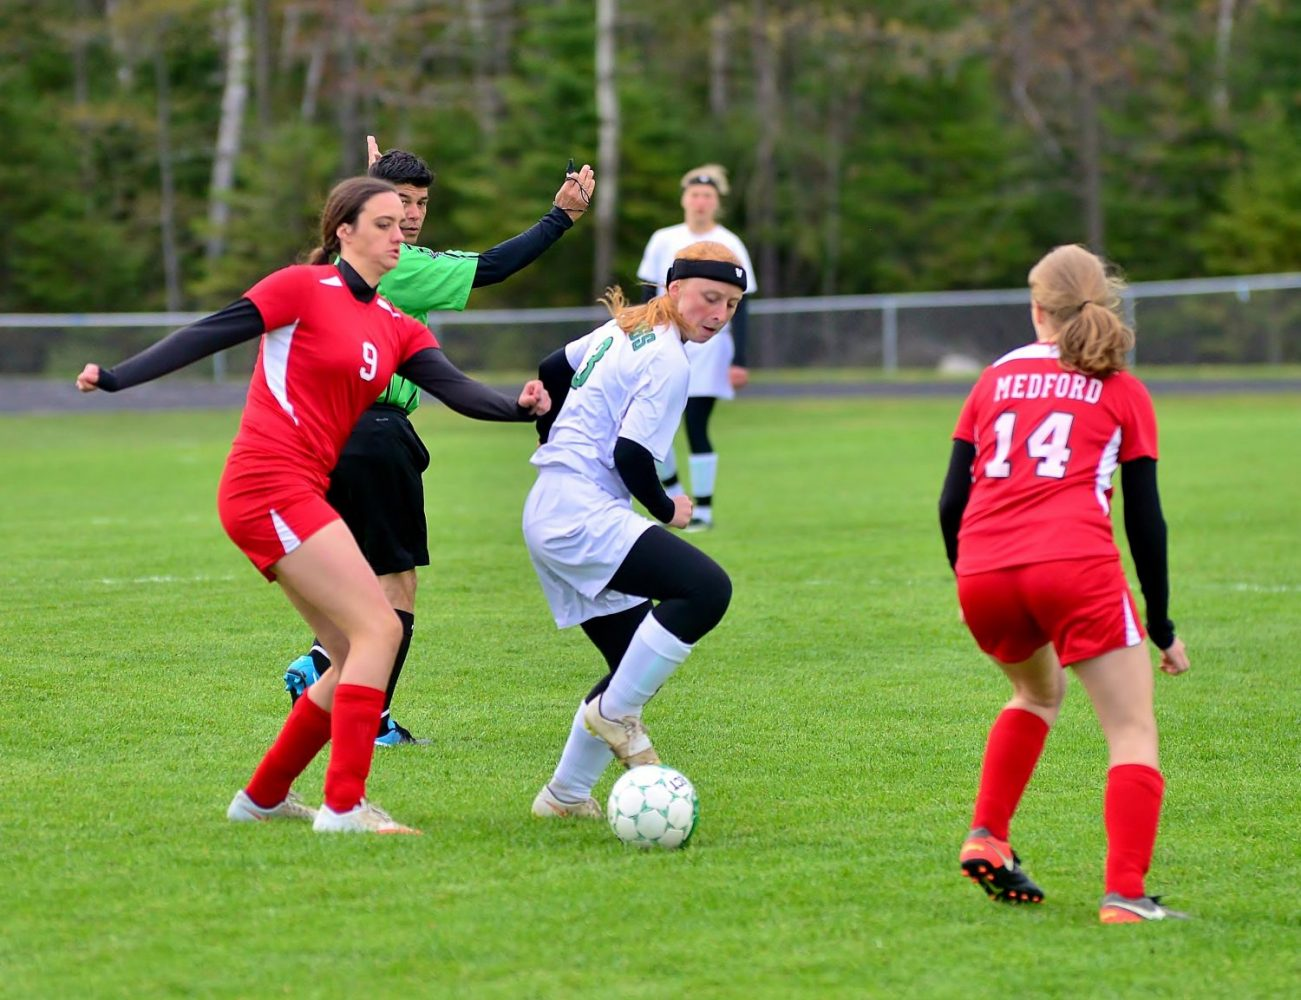 At center, the Hodags' Madeline Losch (3) advances the ball Monday between a couple of Medford players.